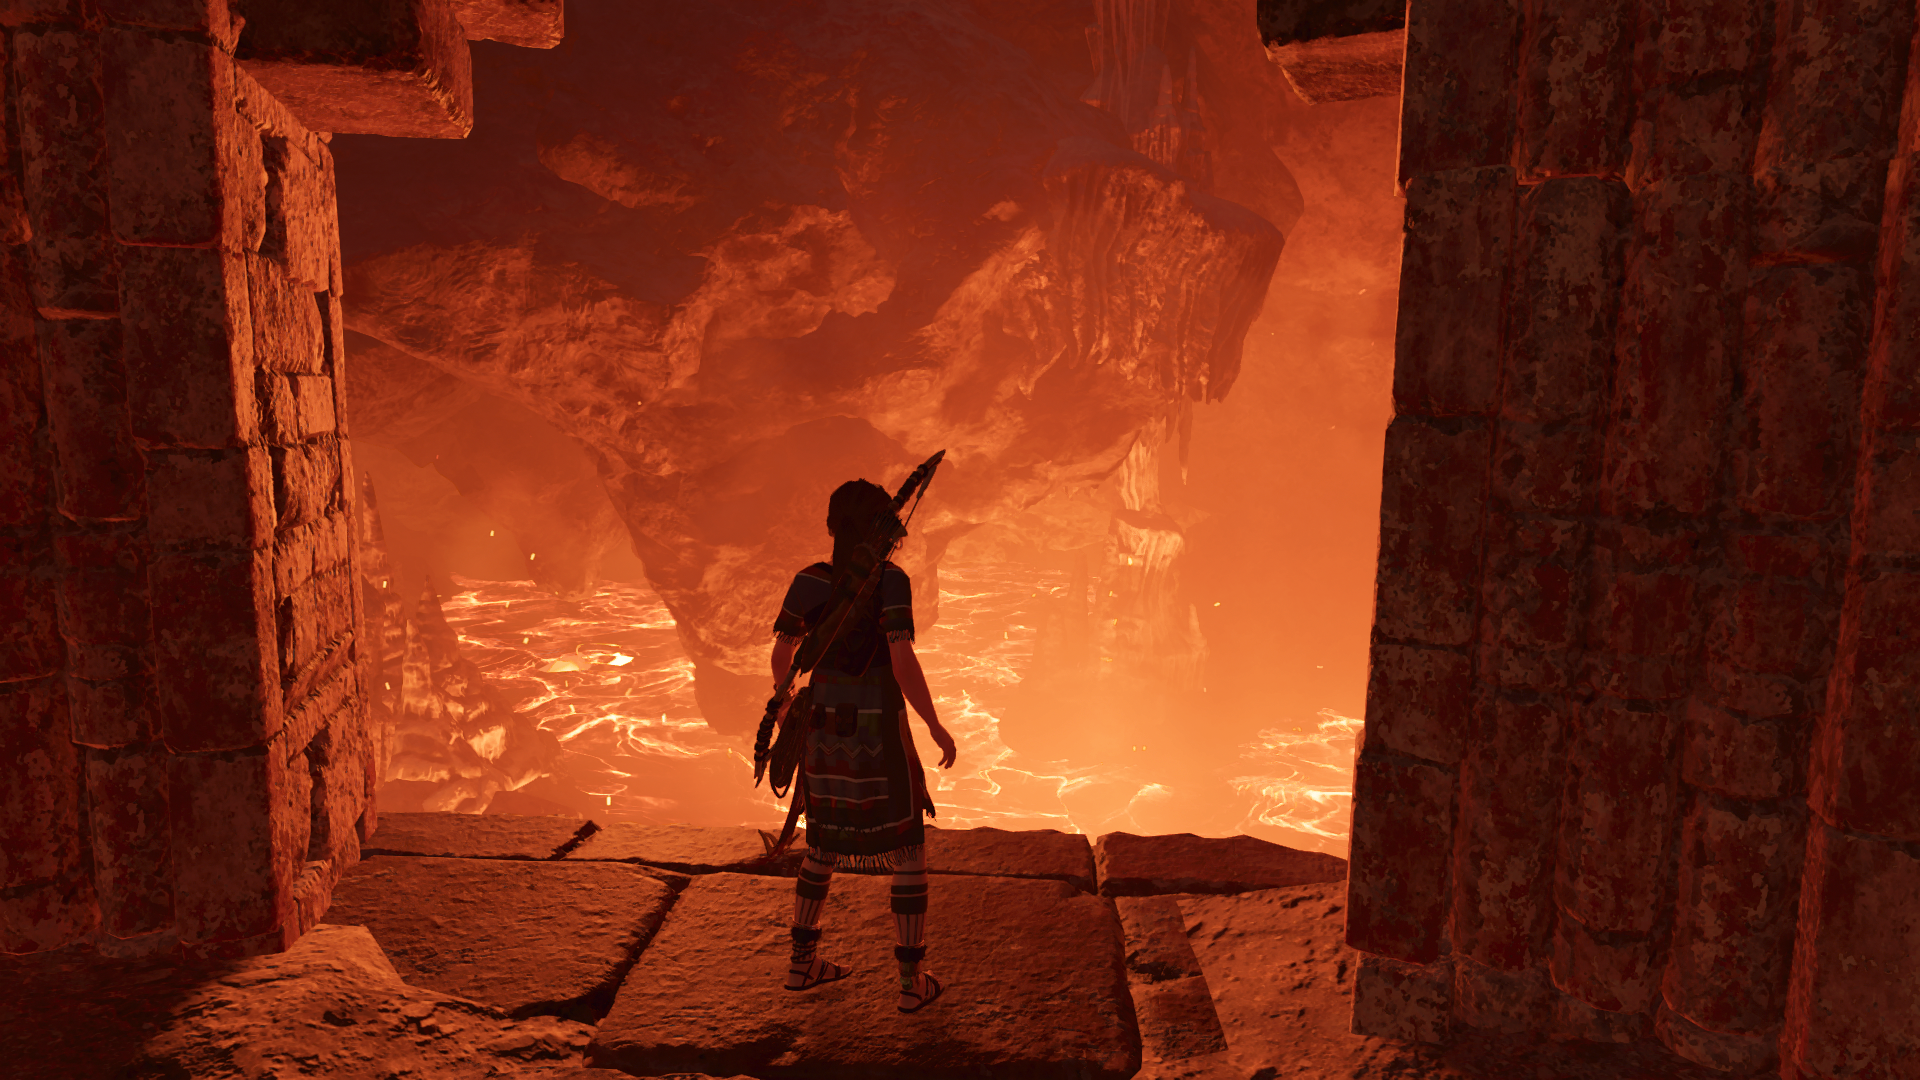 Shadow of the Tomb Raider v1.0 build 237.6_64 13.01.2019 0_20_50.png - Shadow of the Tomb Raider Лара Крофт